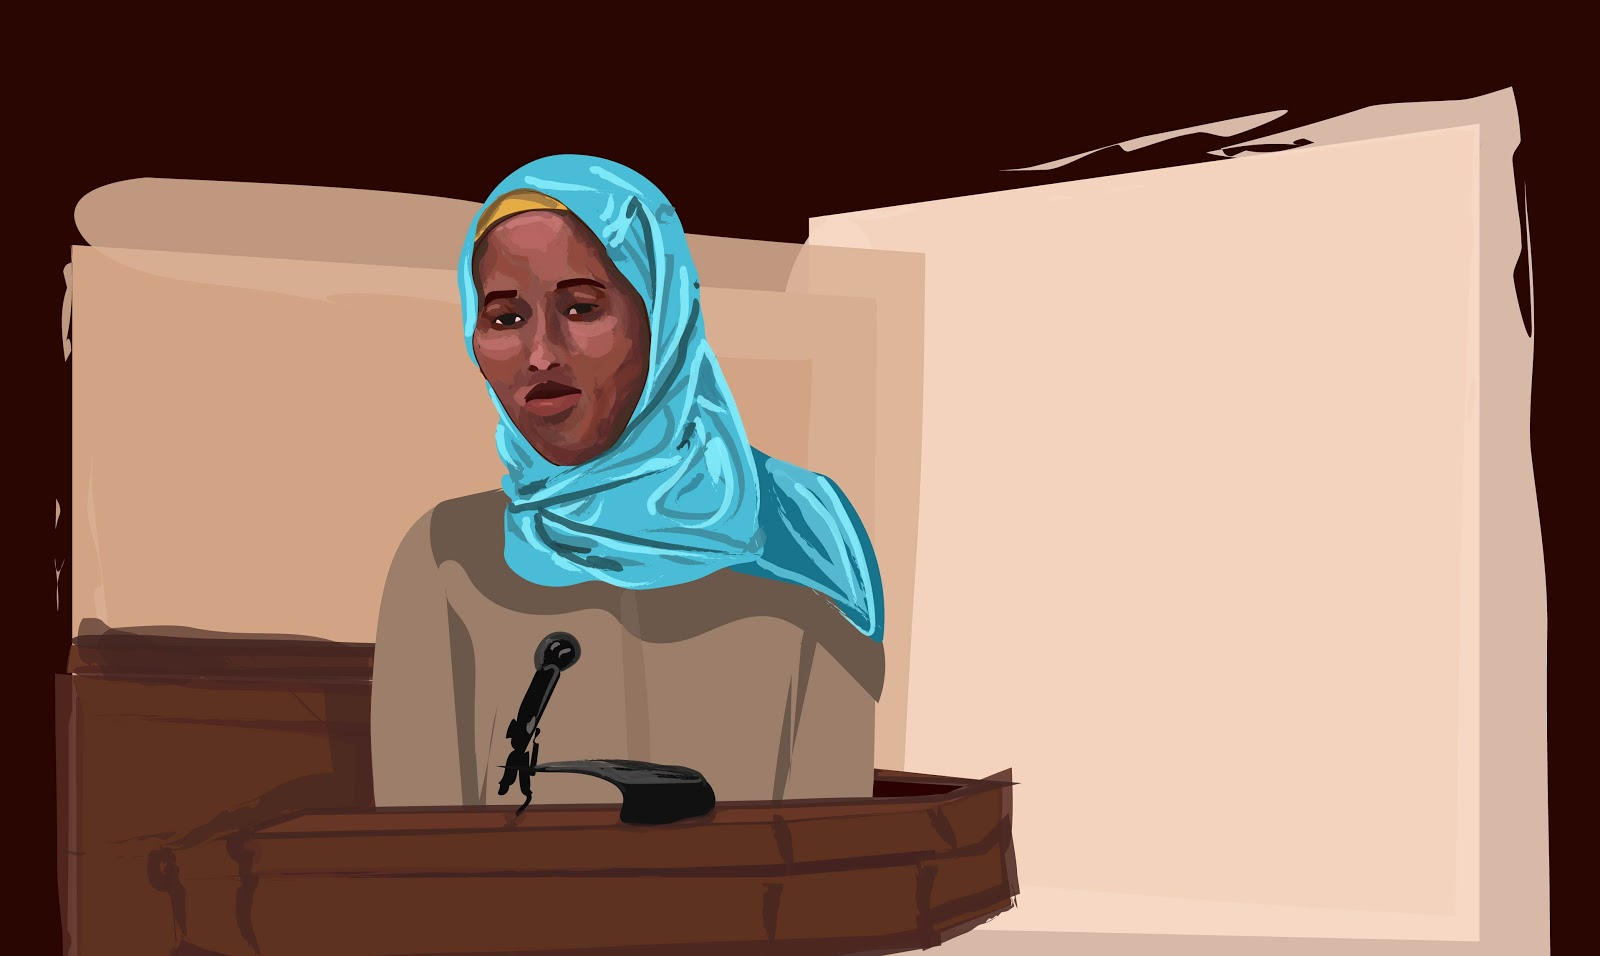 We must be careful not to spread misinformation around the death of Shukri Abdi